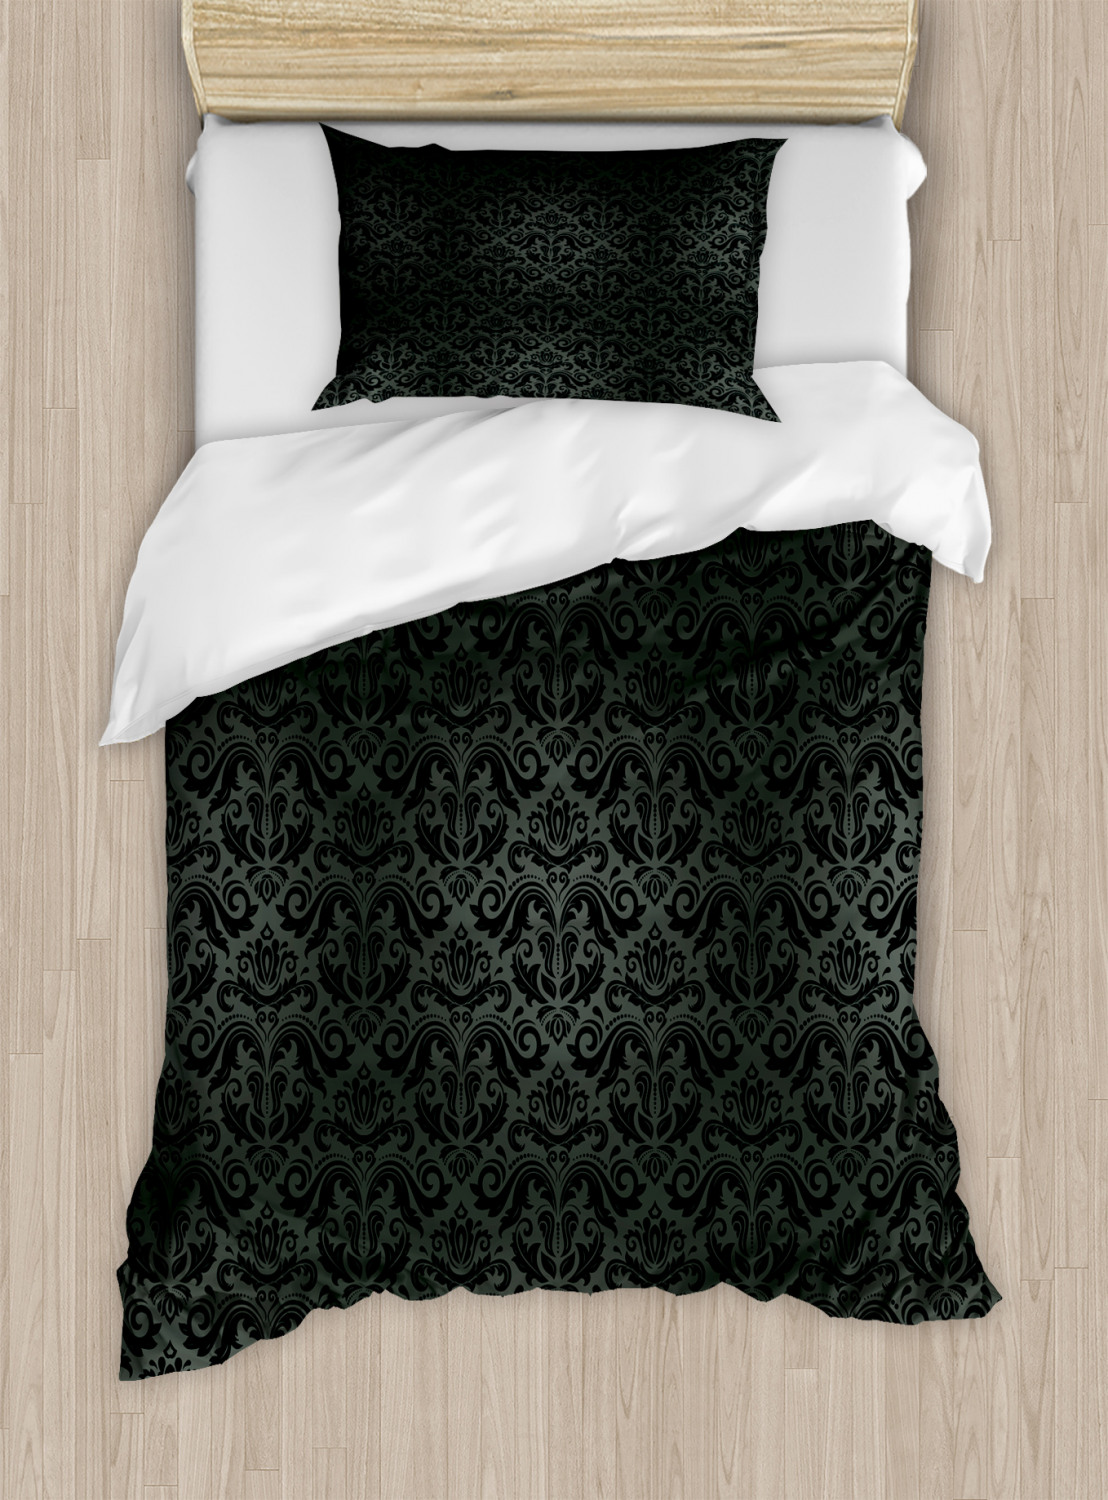 Dark-Grey-Duvet-Cover-Set-Twin-Queen-King-Sizes-with-Pillow-Shams-Ambesonne thumbnail 13